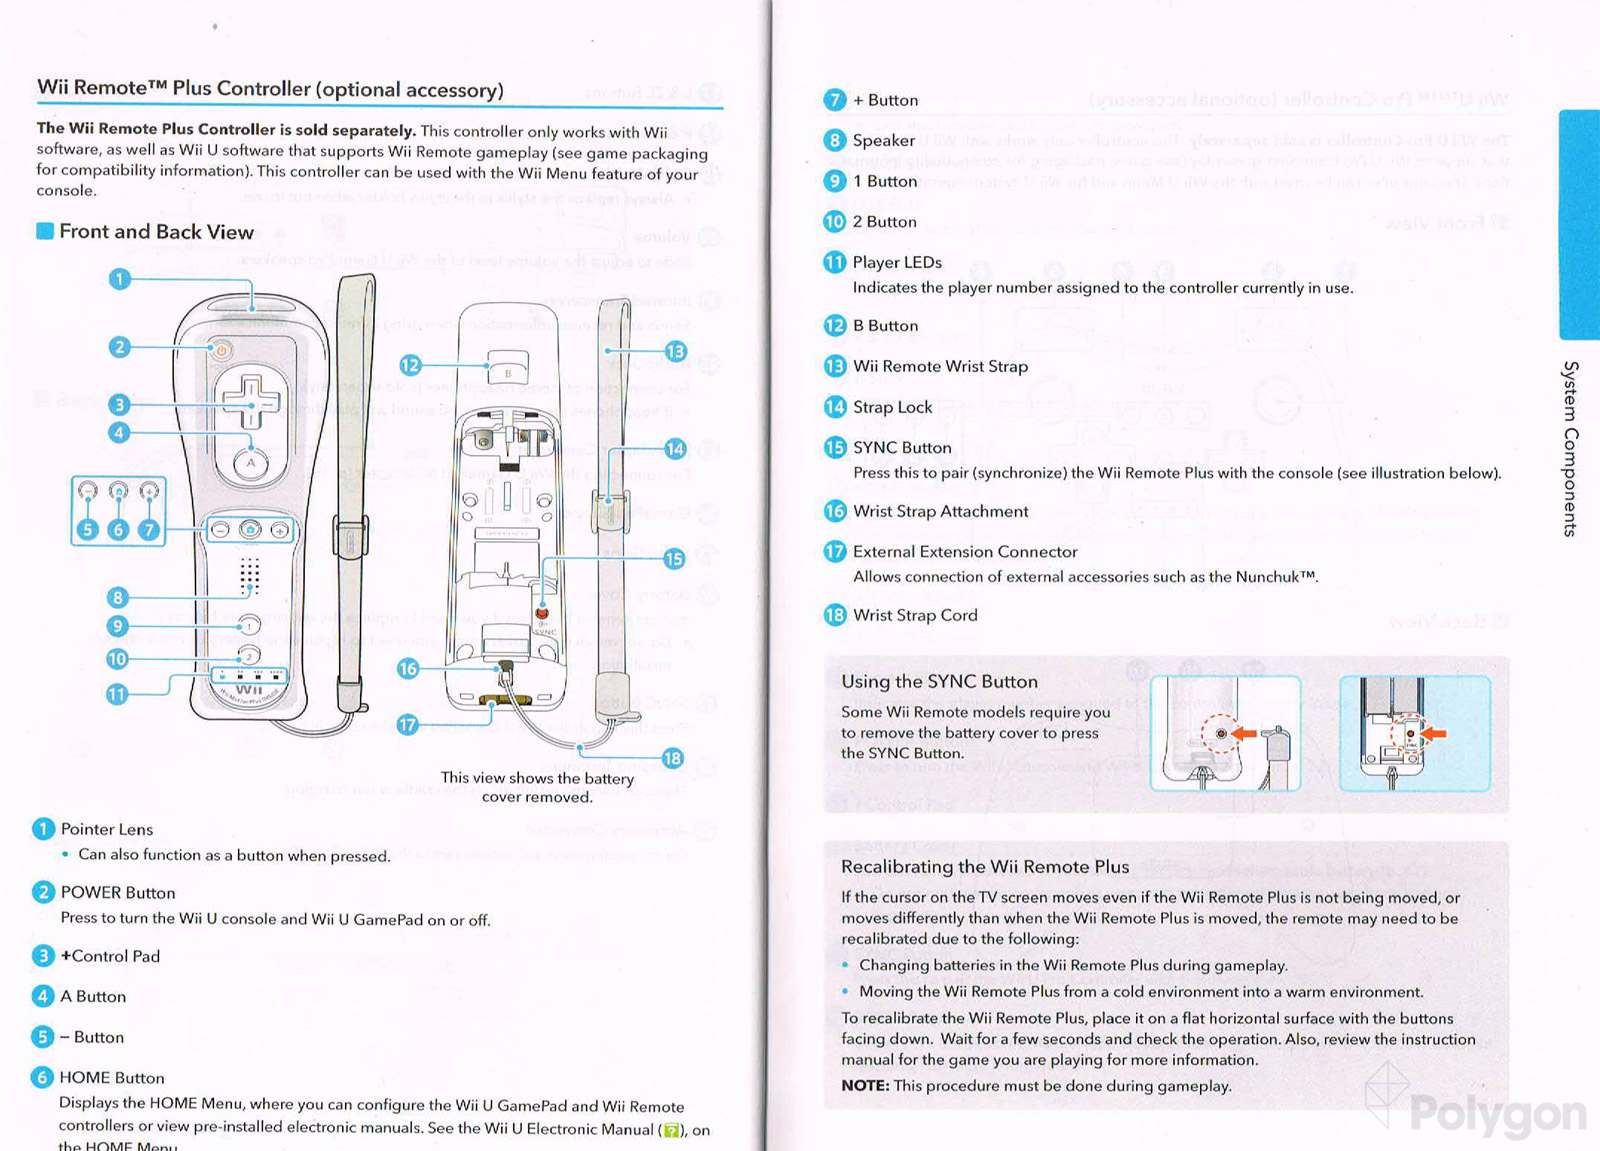 wii u instruction manual photos nintendotoday rh nintendotoday com Diagram Instruction Manual Wii U Gamepad Wii U User Settings